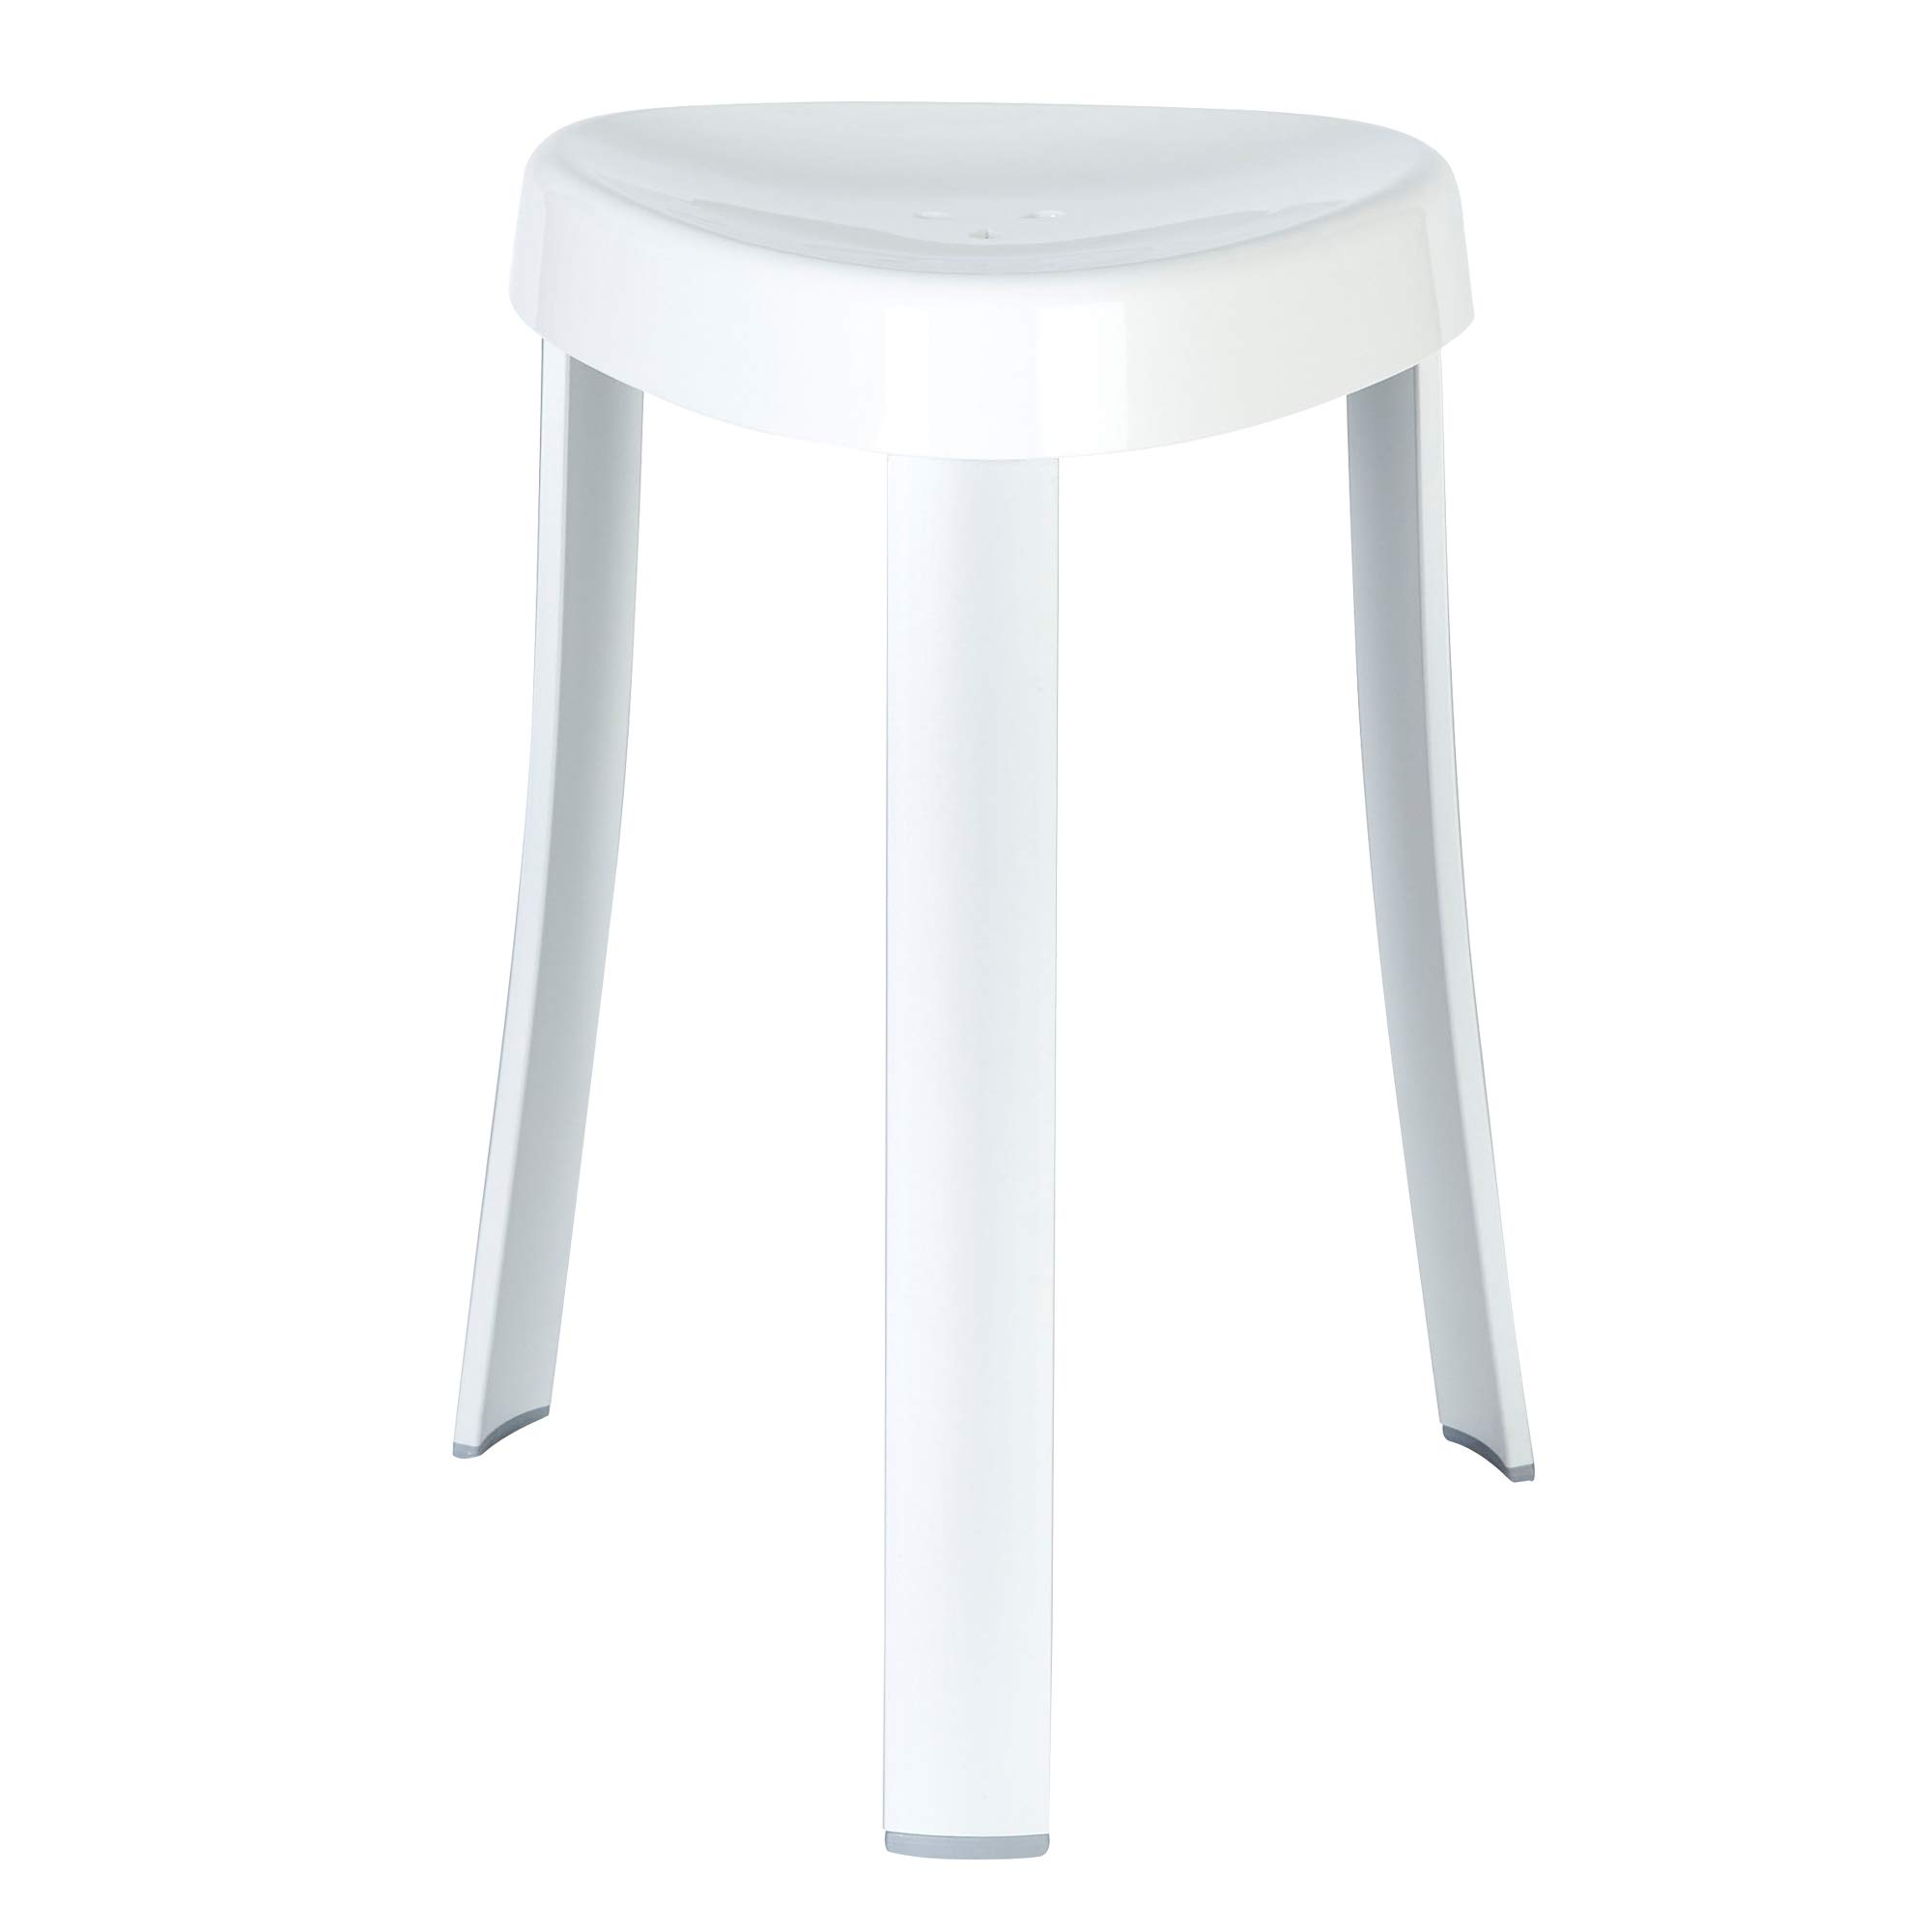 Better Living Products 70060 Spa Shower Seat, White